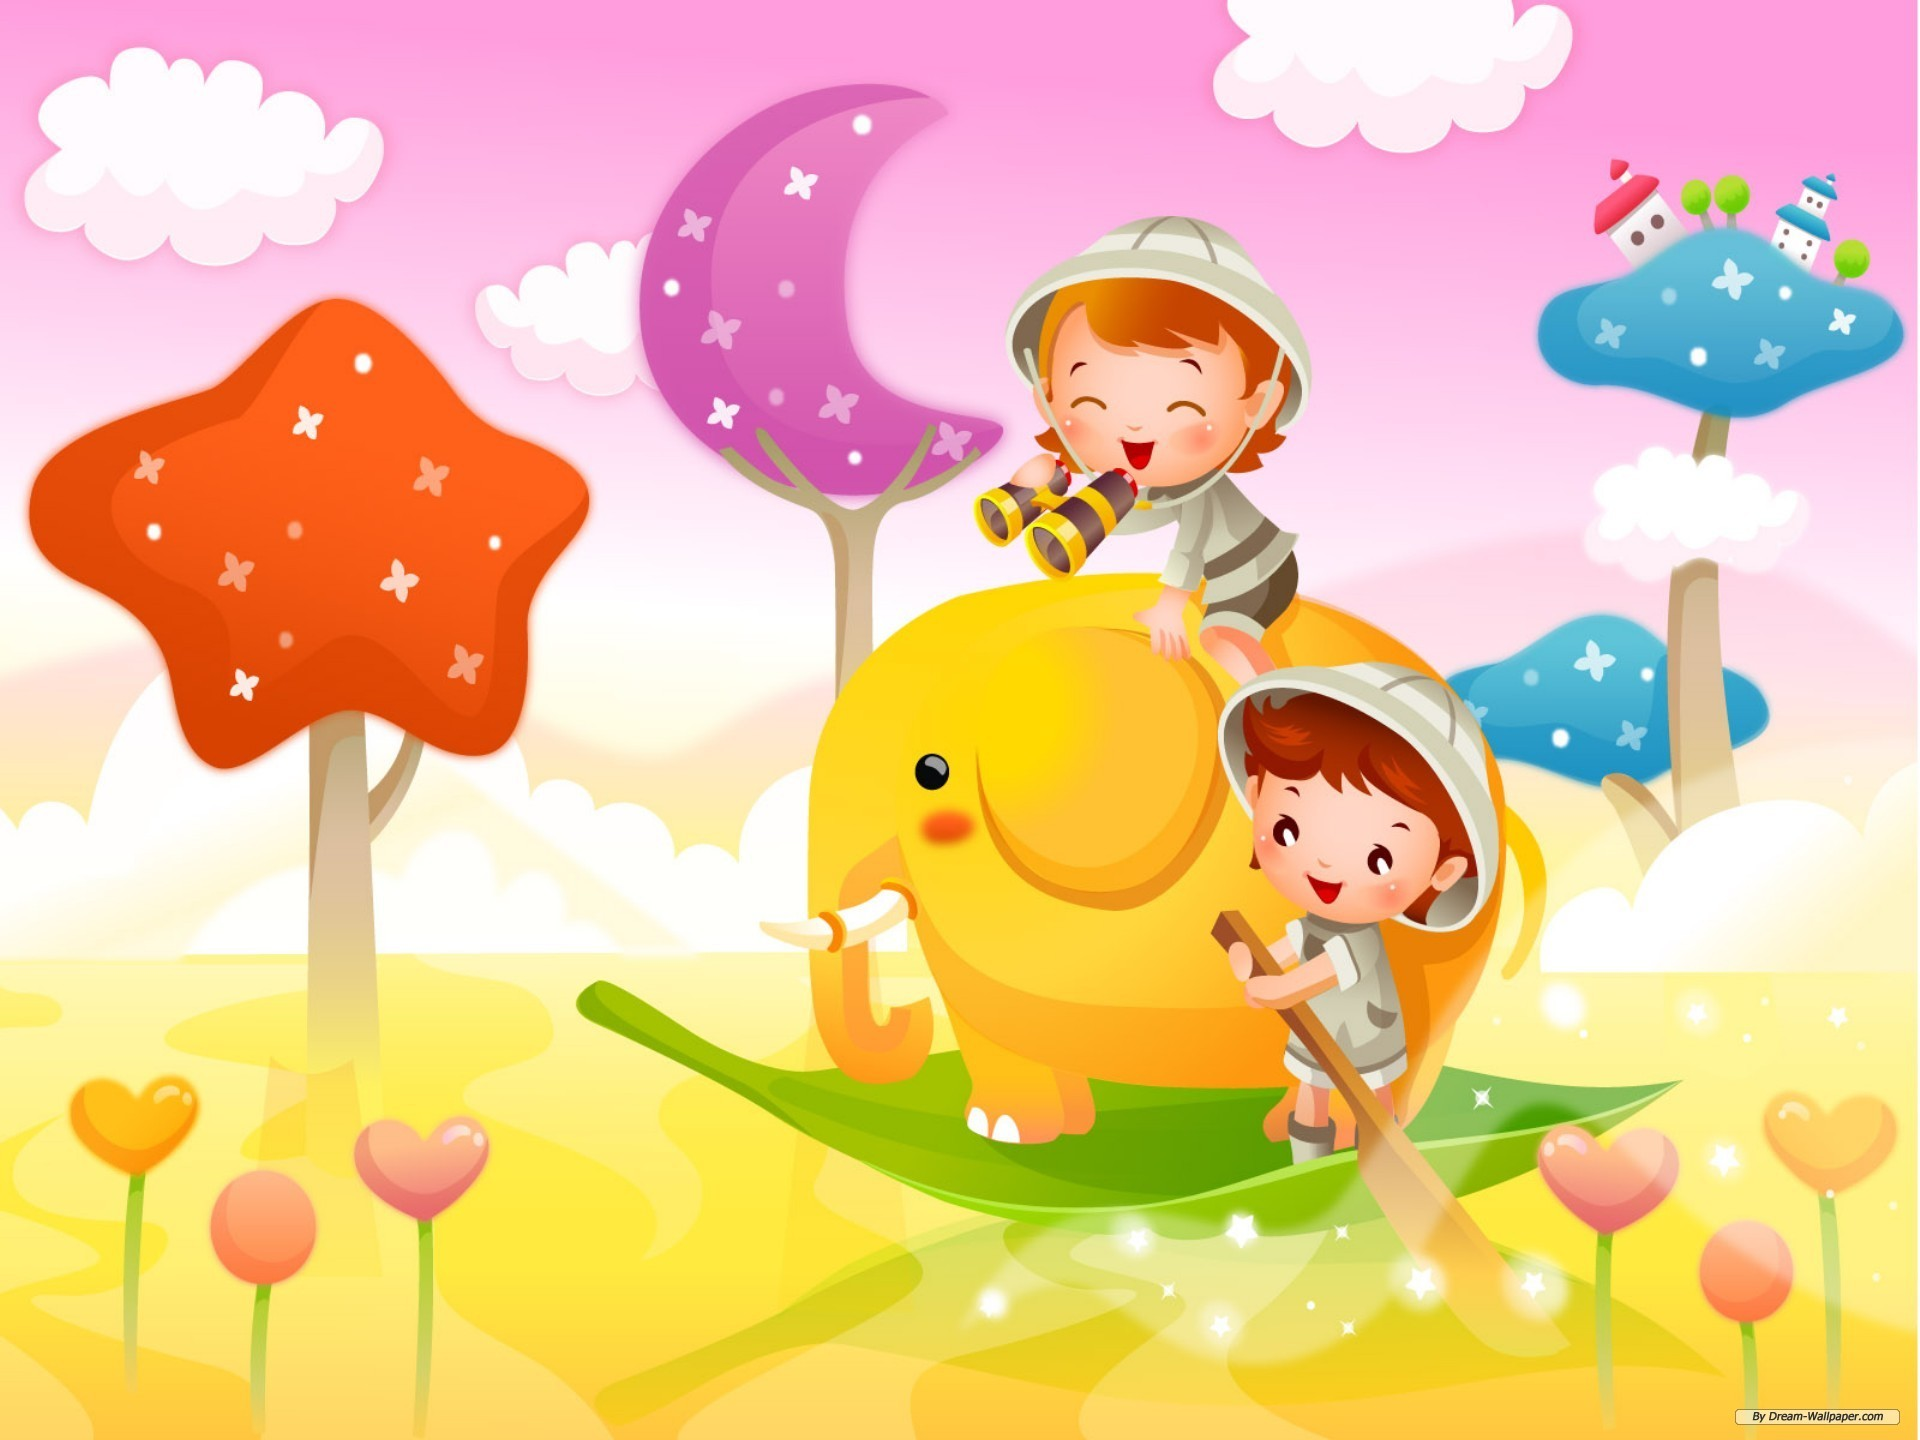 1920x1440 Image for Cartoons For Kids Background Wallpaper